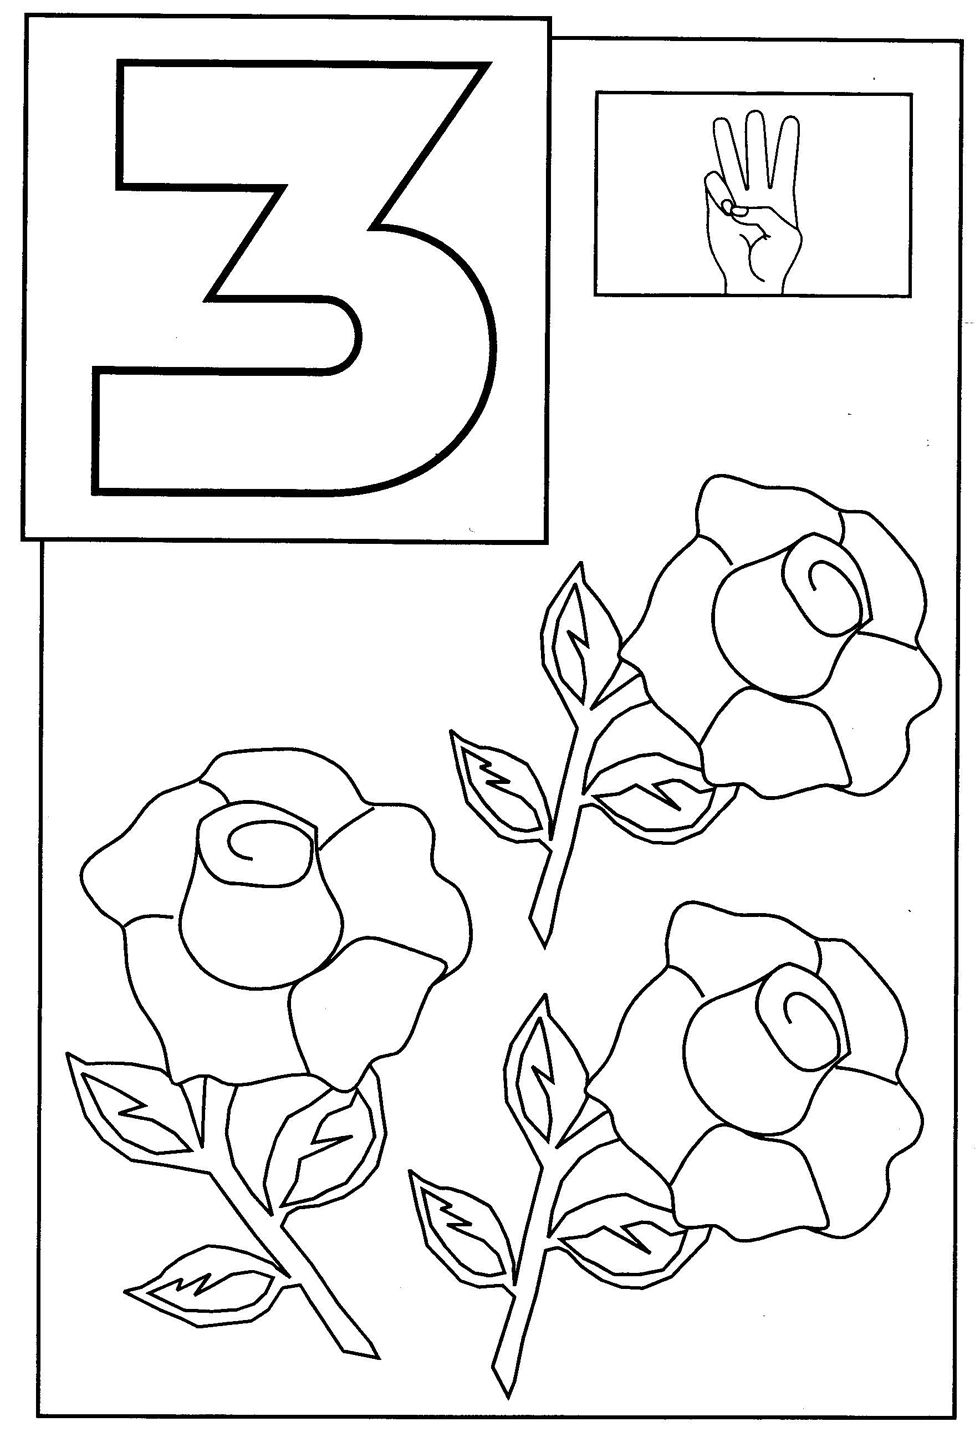 coloring number 3 worksheets for preschool number three coloring page at getcoloringscom free 3 worksheets preschool coloring for number